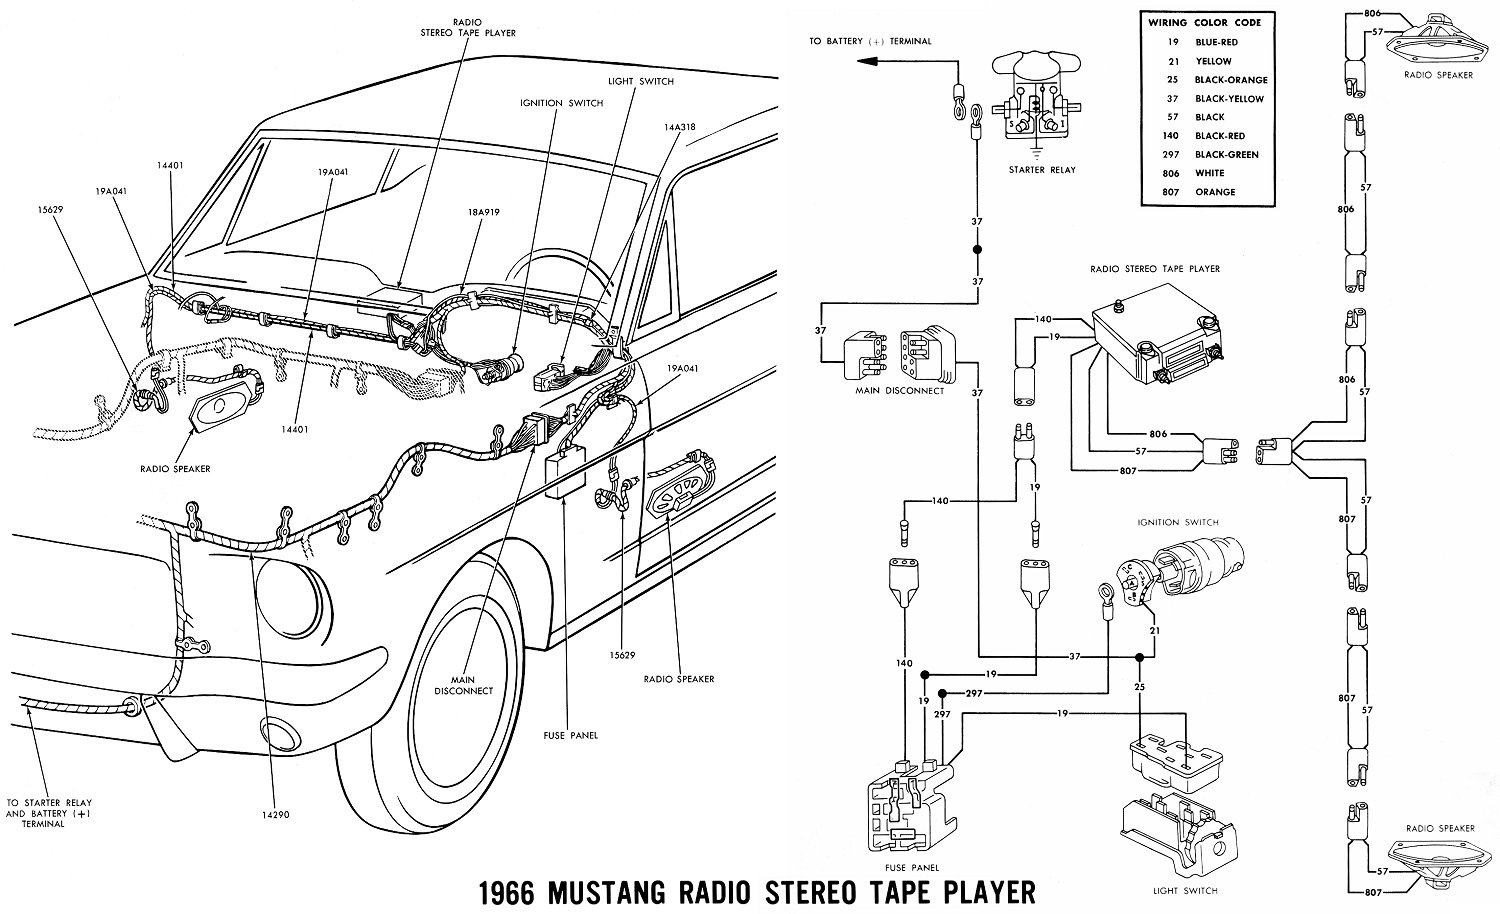 ... 66 accessories schematic · 66 stereo/tape player details ...